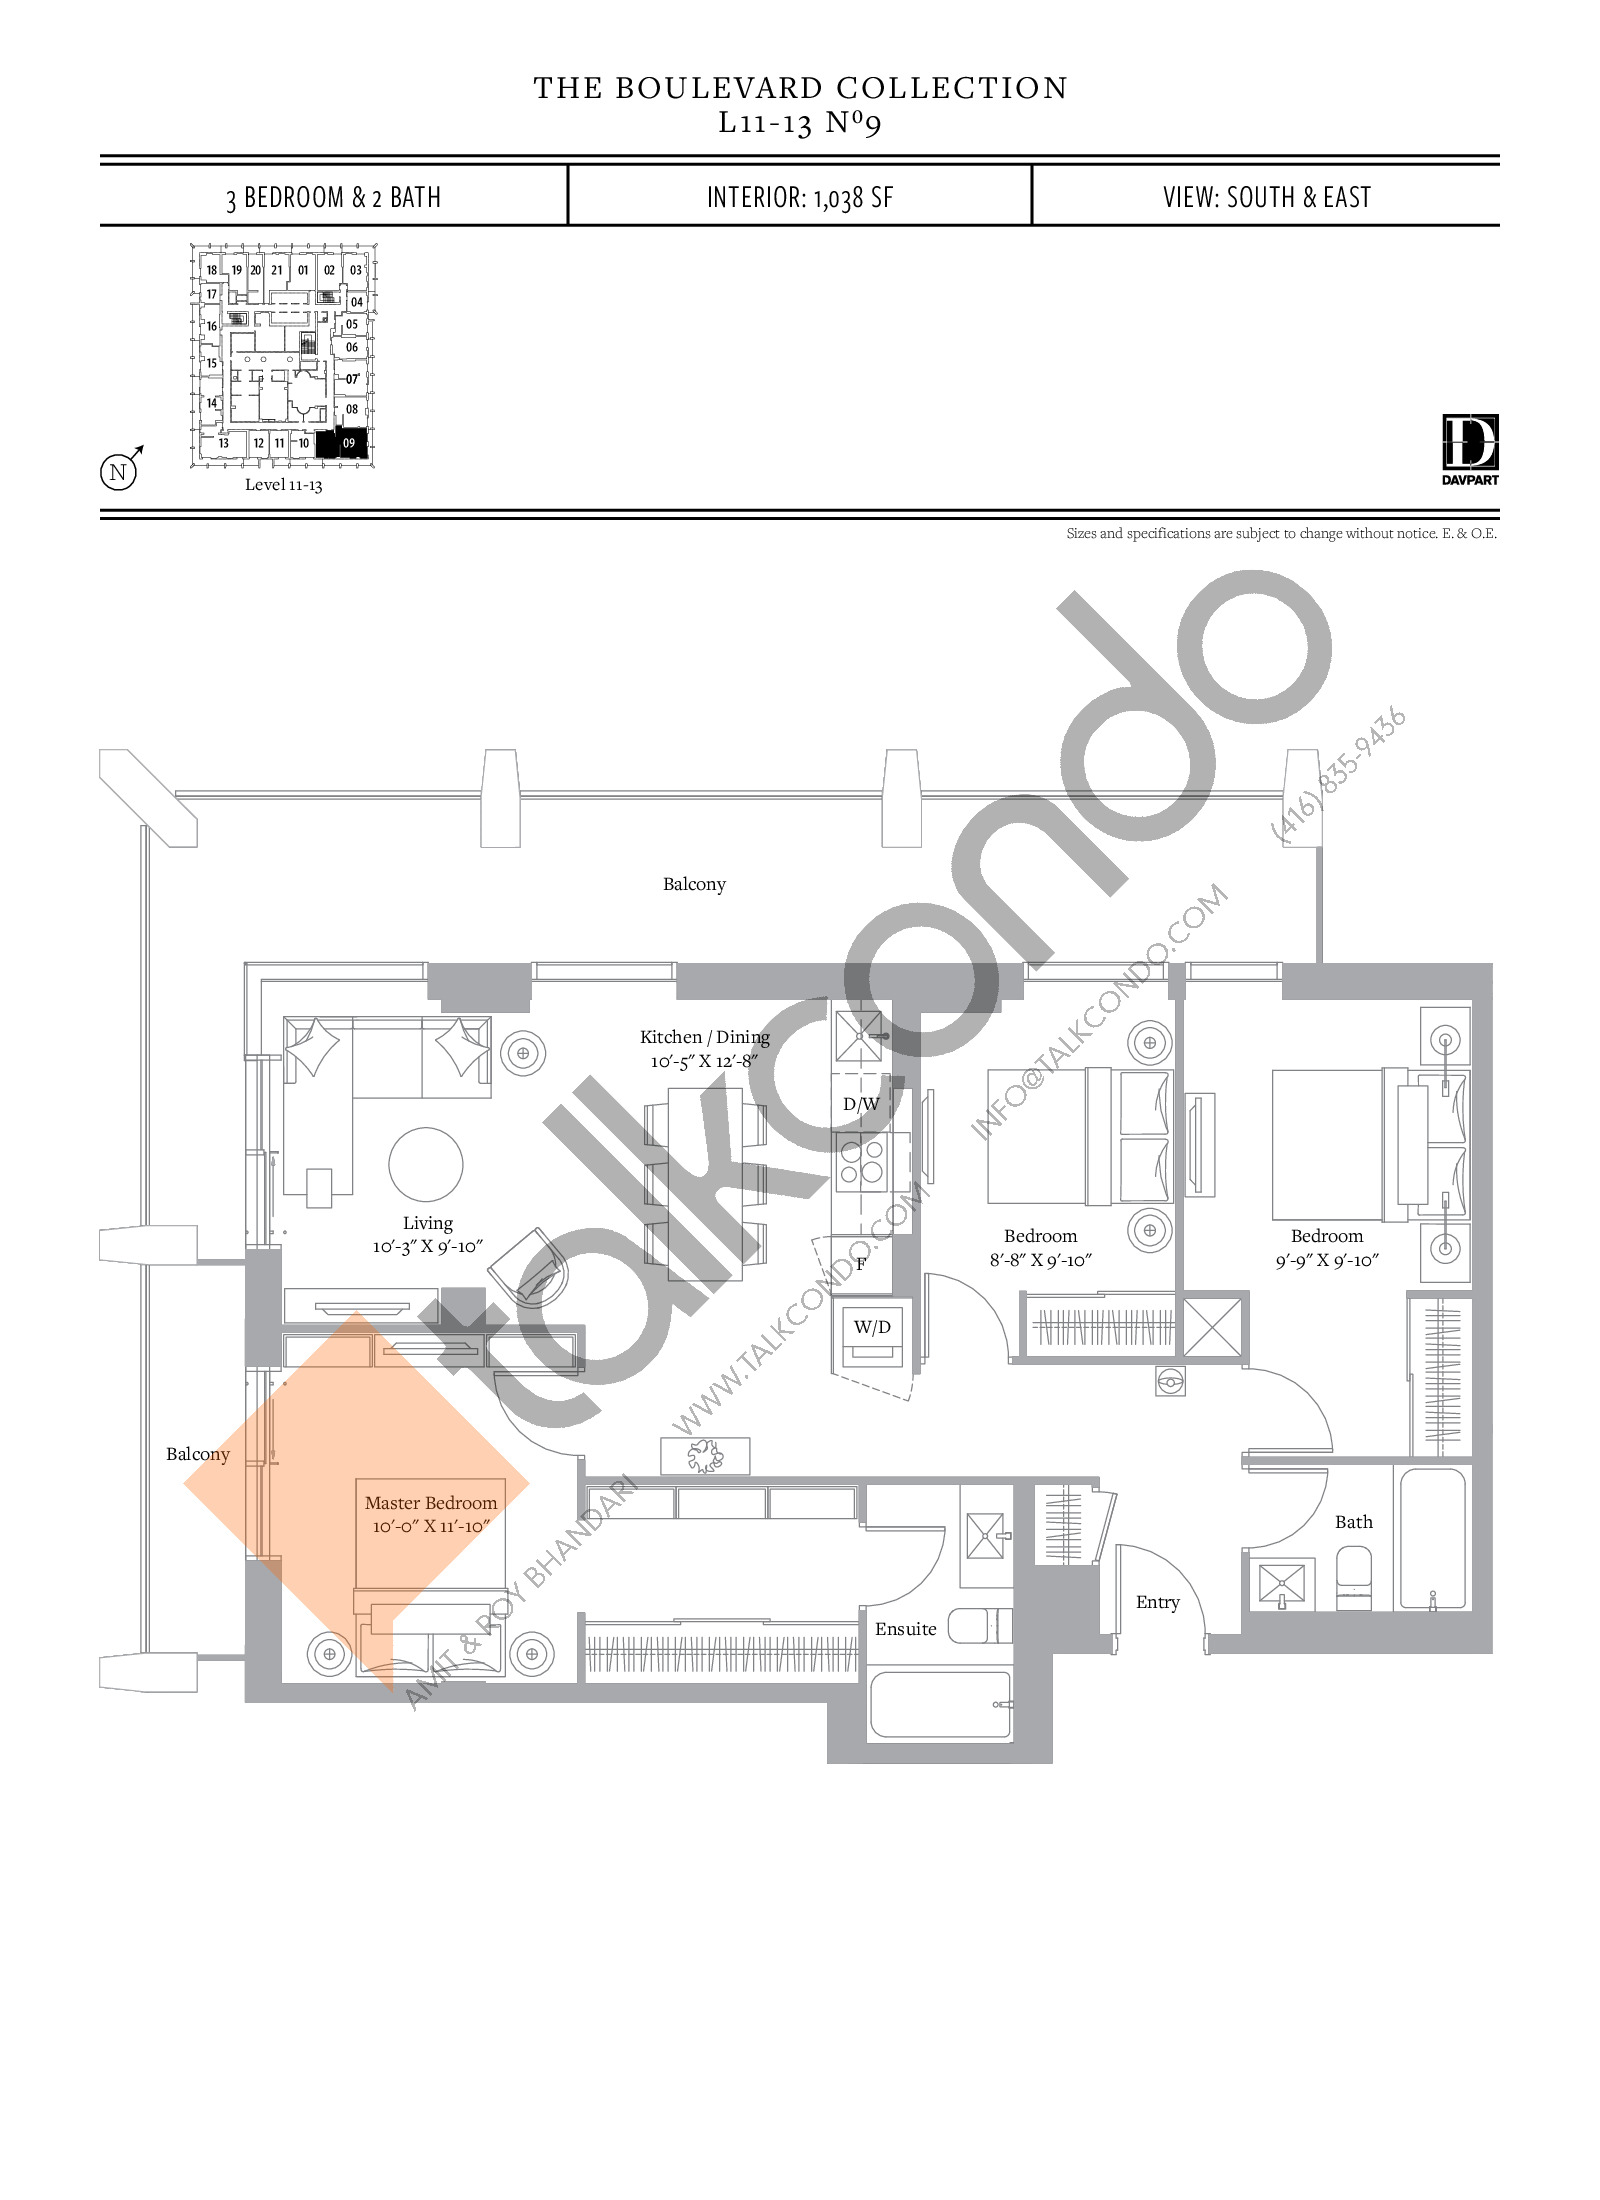 No 9 - The Boulevard Collection Floor Plan at The United Bldg. Condos - 1038 sq.ft